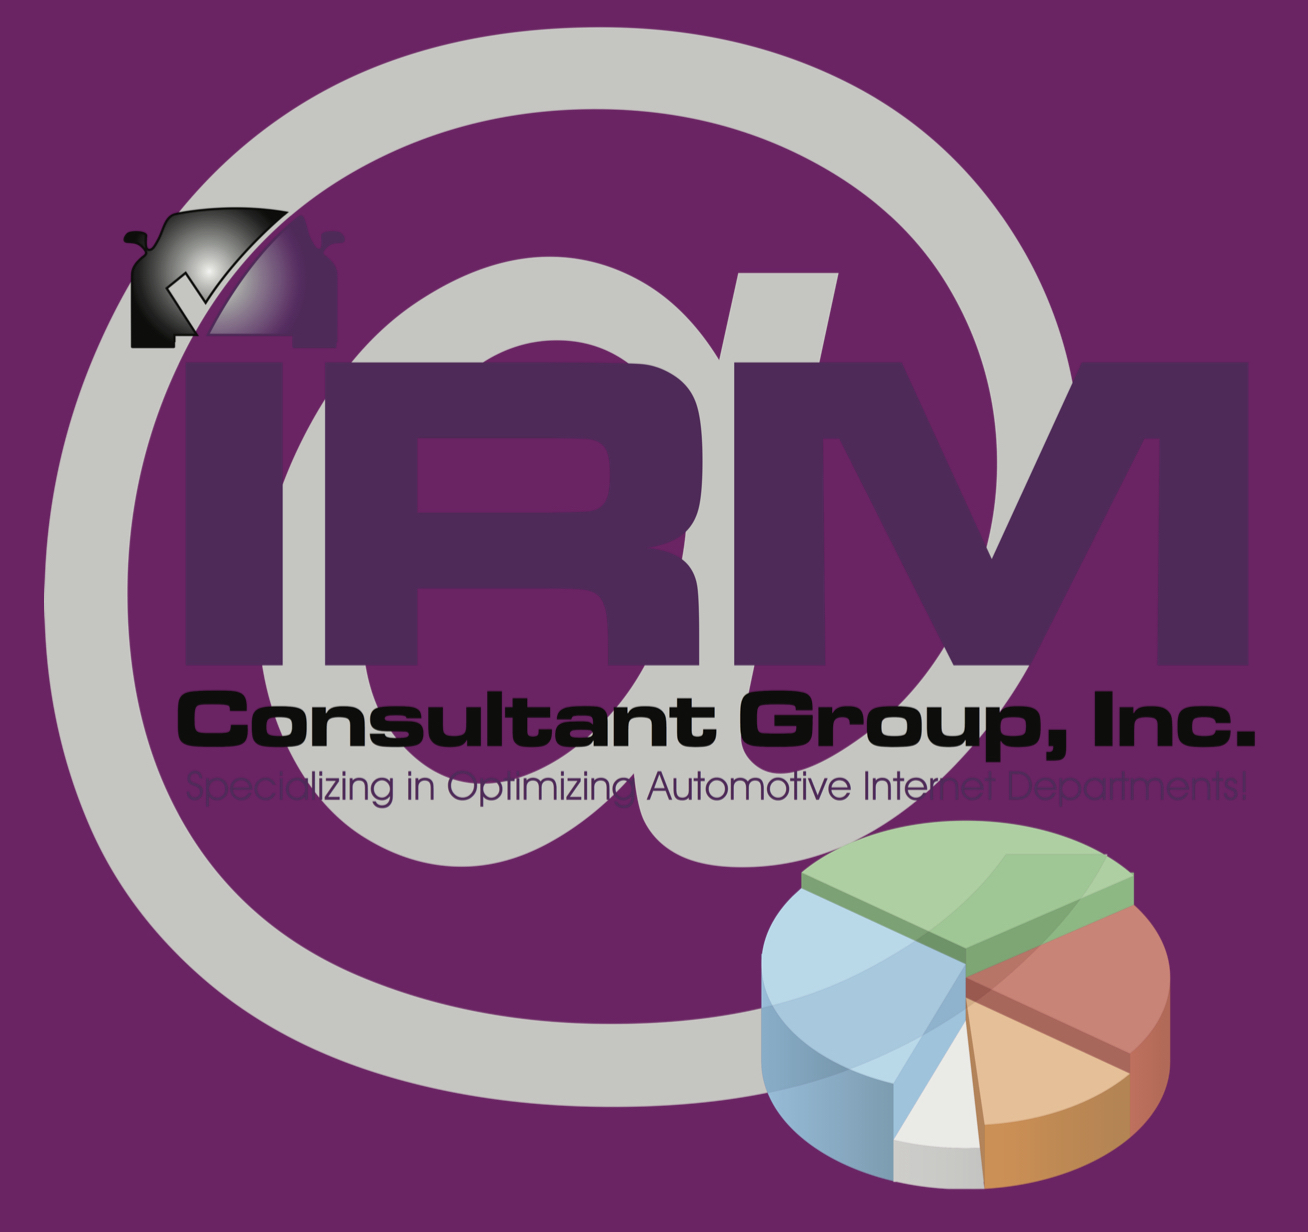 IRM Consultant Group, Inc.